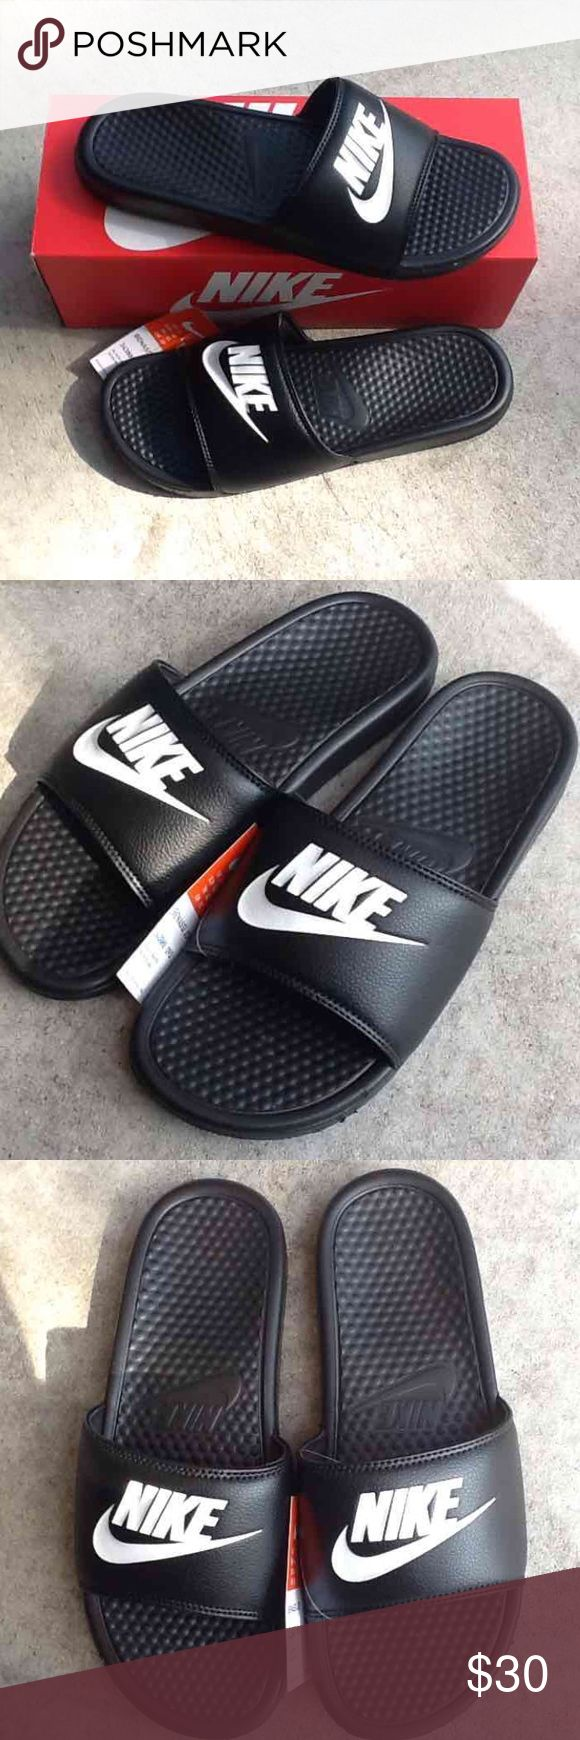 sz 13 NIKE BENASSI SLIDE JUST DO IT Authentic; one pair of Nike men's sandals (Size 13) Synthetic leather upper Phylon midsole Men's athletic footwear from Finish Line Synthetic upper; Rubber outsole Brand new in box. Never been used.  Not responsible for any damage done by shipping. Free cosmetic sample gift with the purchase of $20 and over. For less on merc Nike Shoes Sandals & Flip-Flops